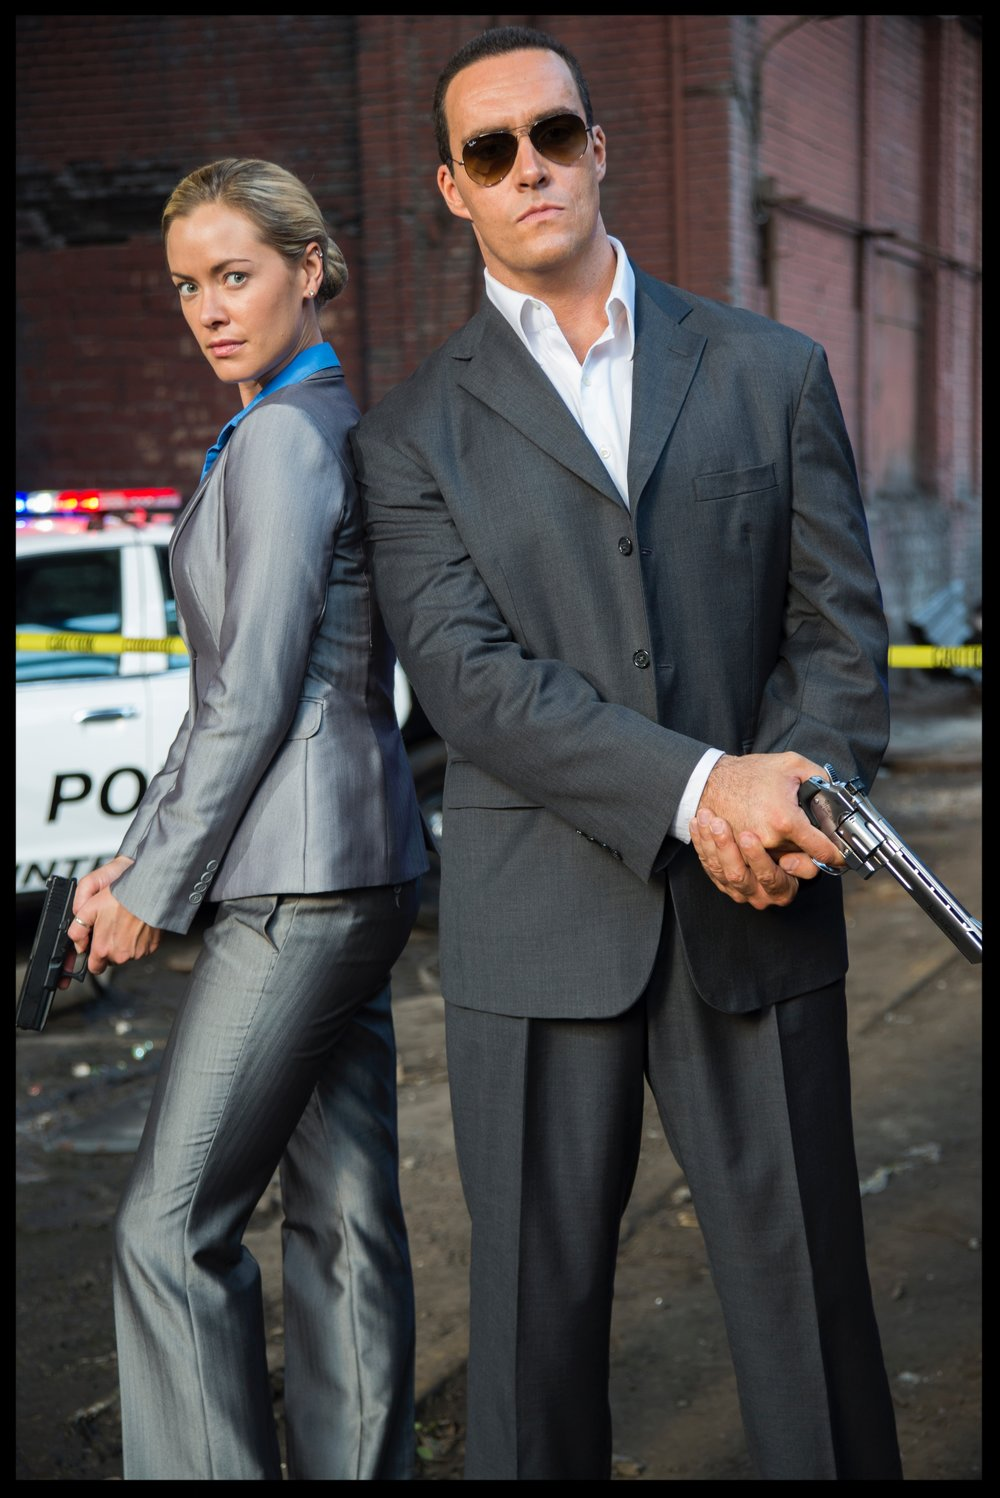 Kristanna Loken (Terminator 3) and Alexander Nevsky in Black Rose